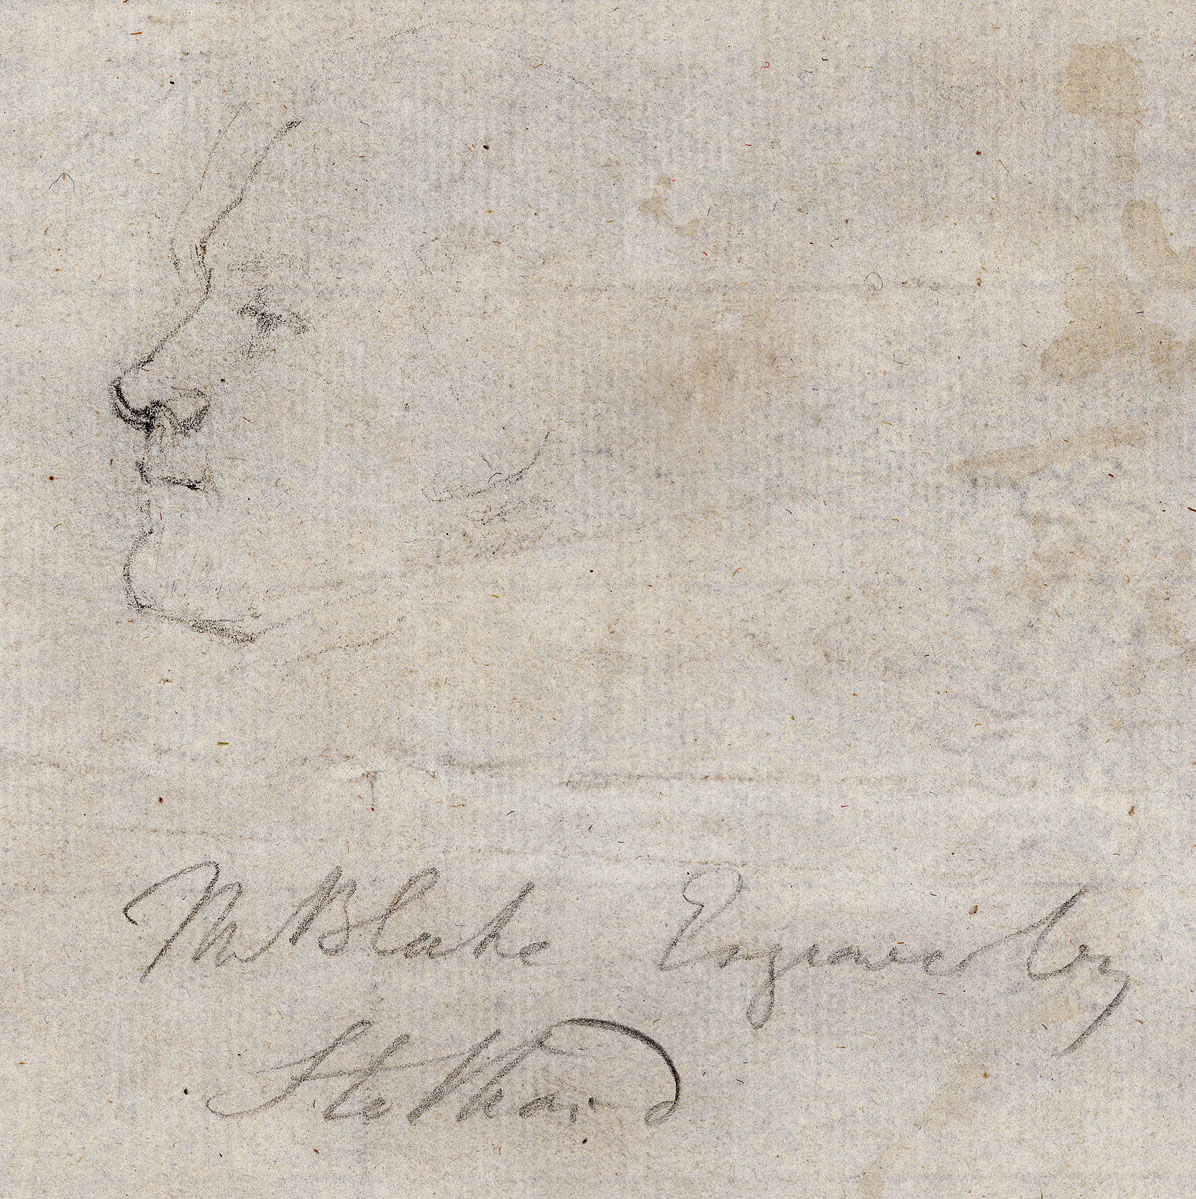 Mr Blake Engraver by                   Stothard